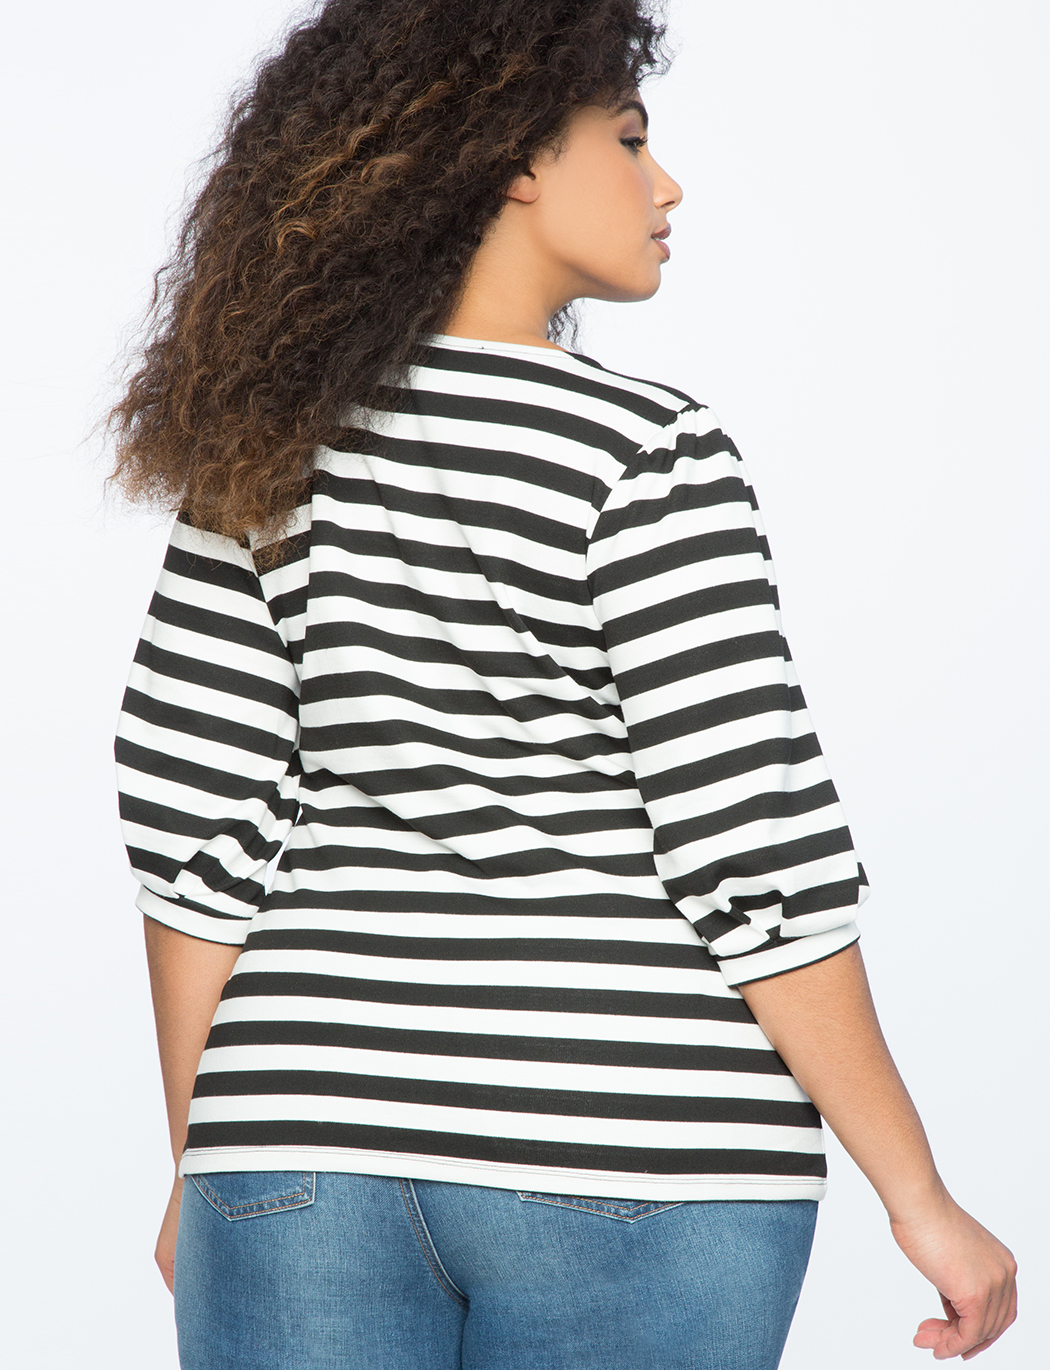 Striped Puff Sleeve Top